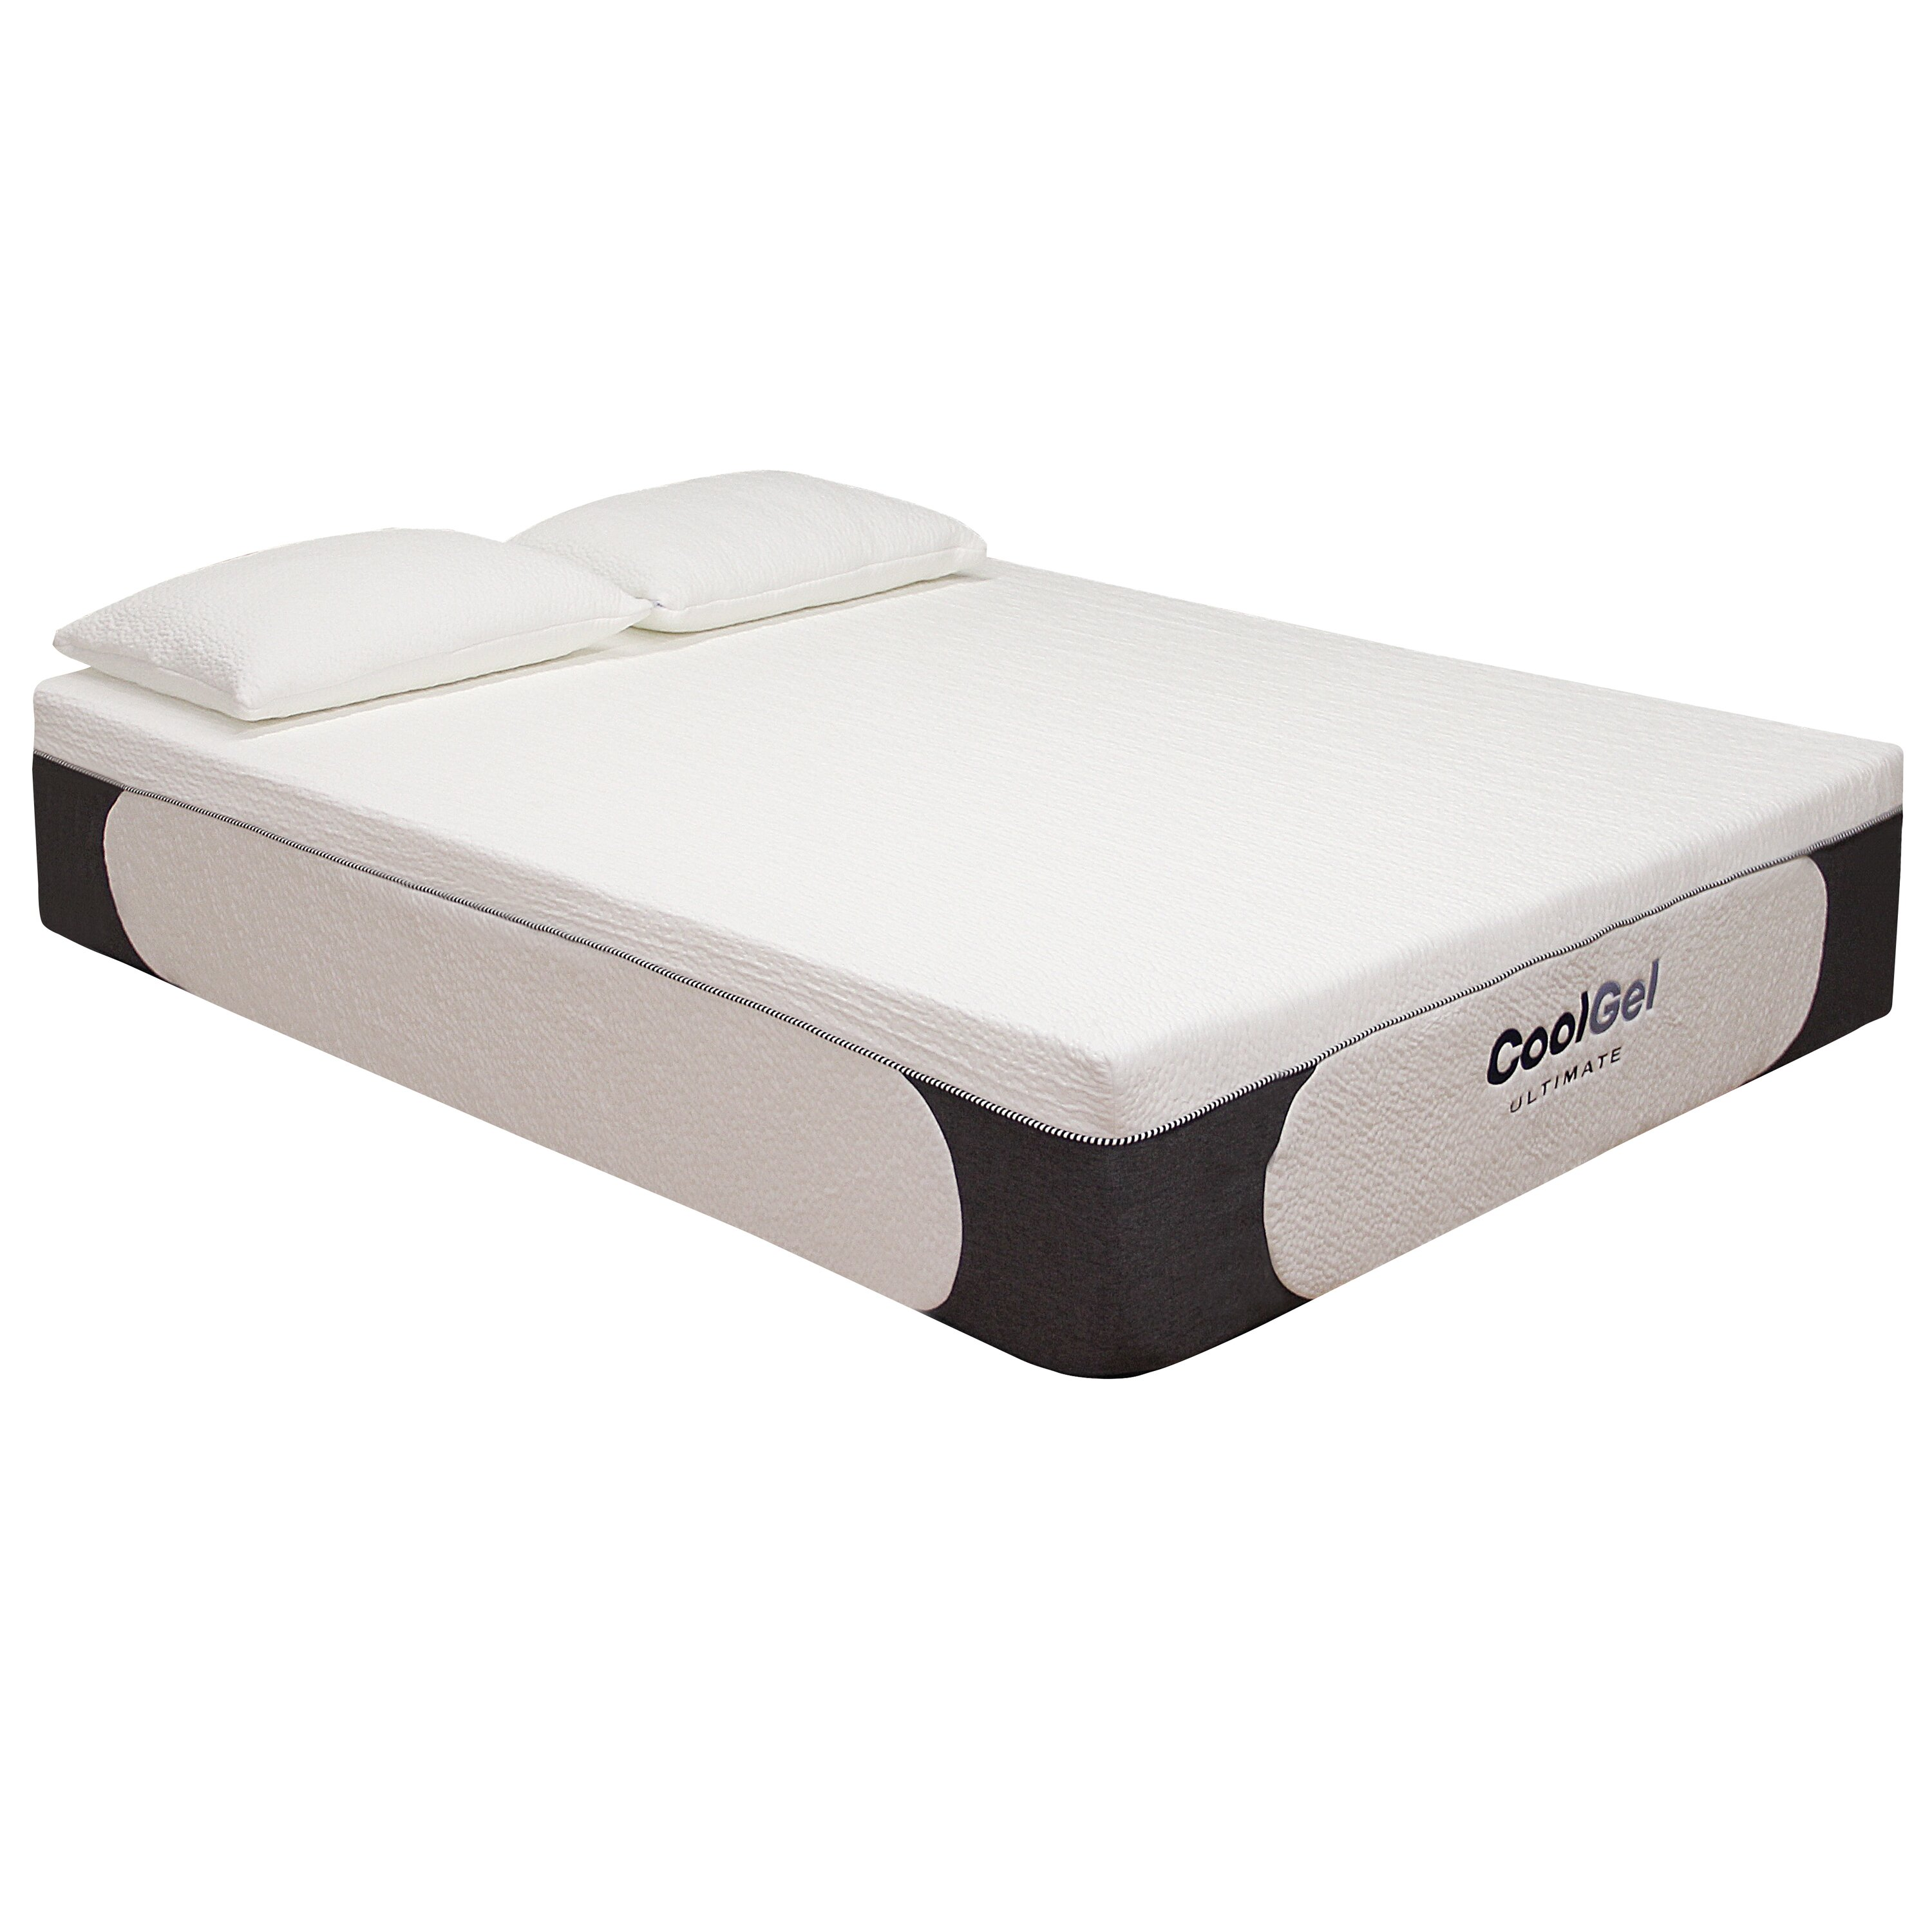 "Classic Brands 14"" Gel Memory Foam Mattress & Reviews"